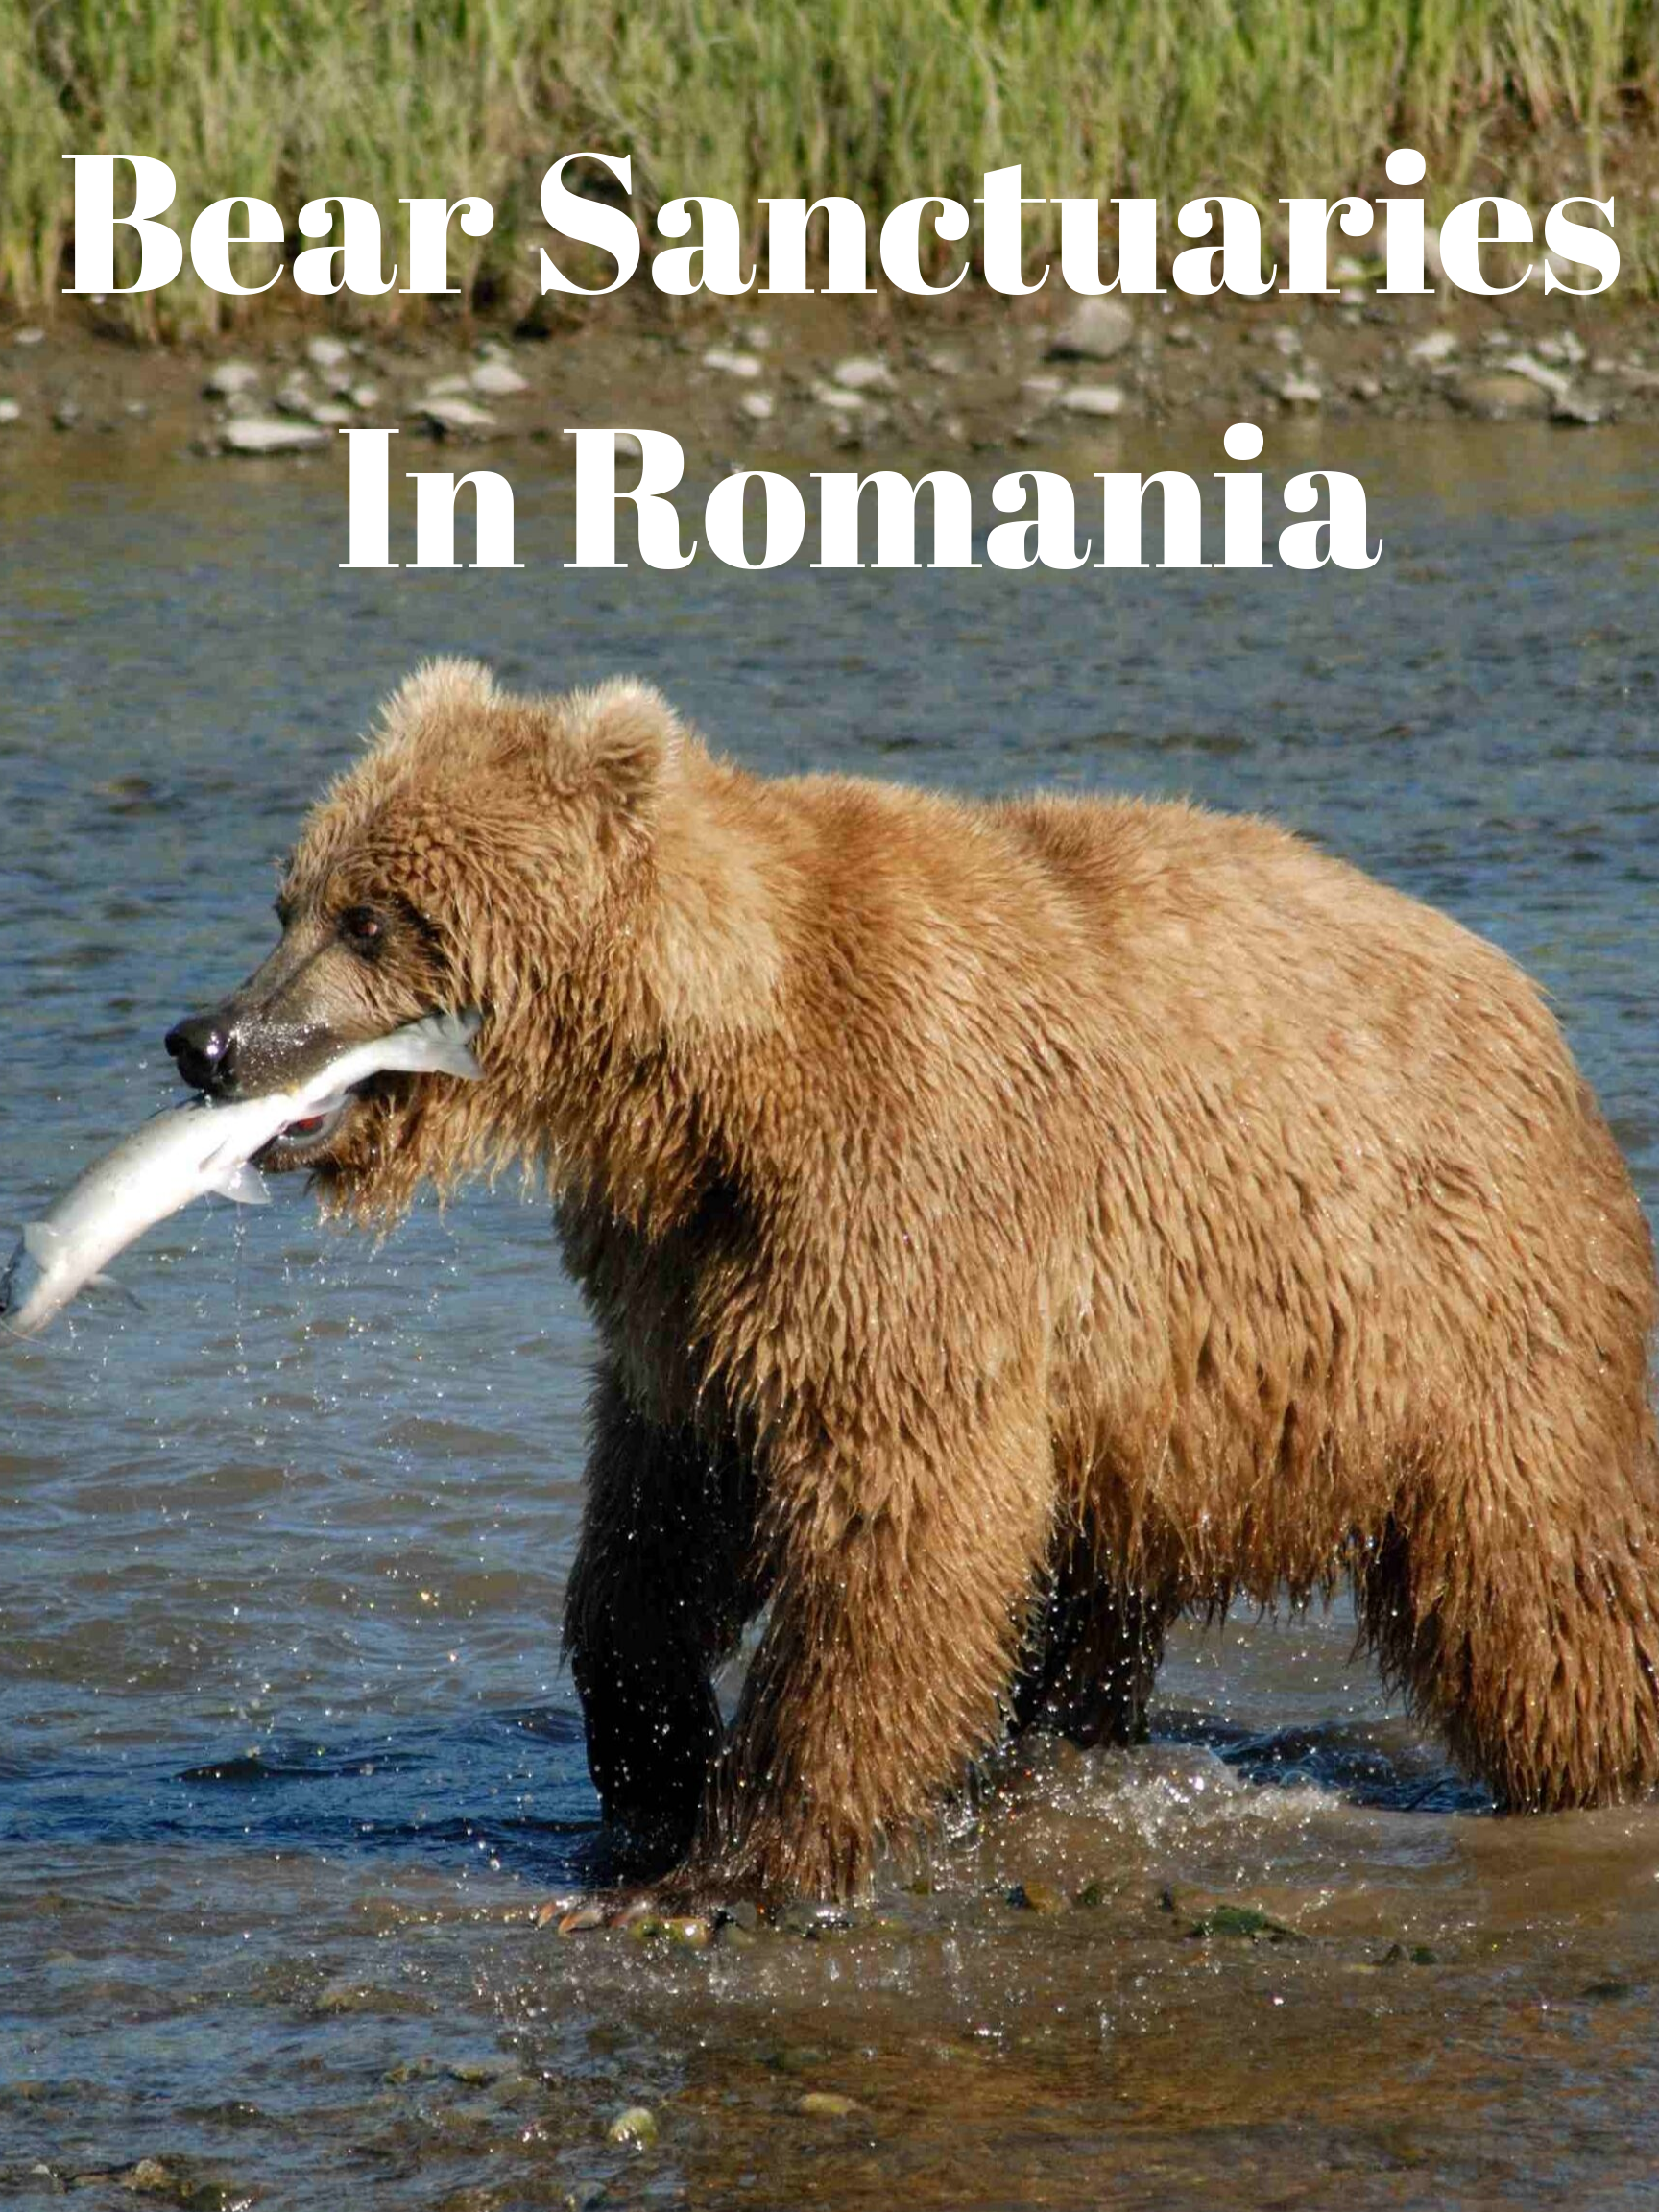 Romania Tracking Bears And Visiting Their Sanctuary Bear